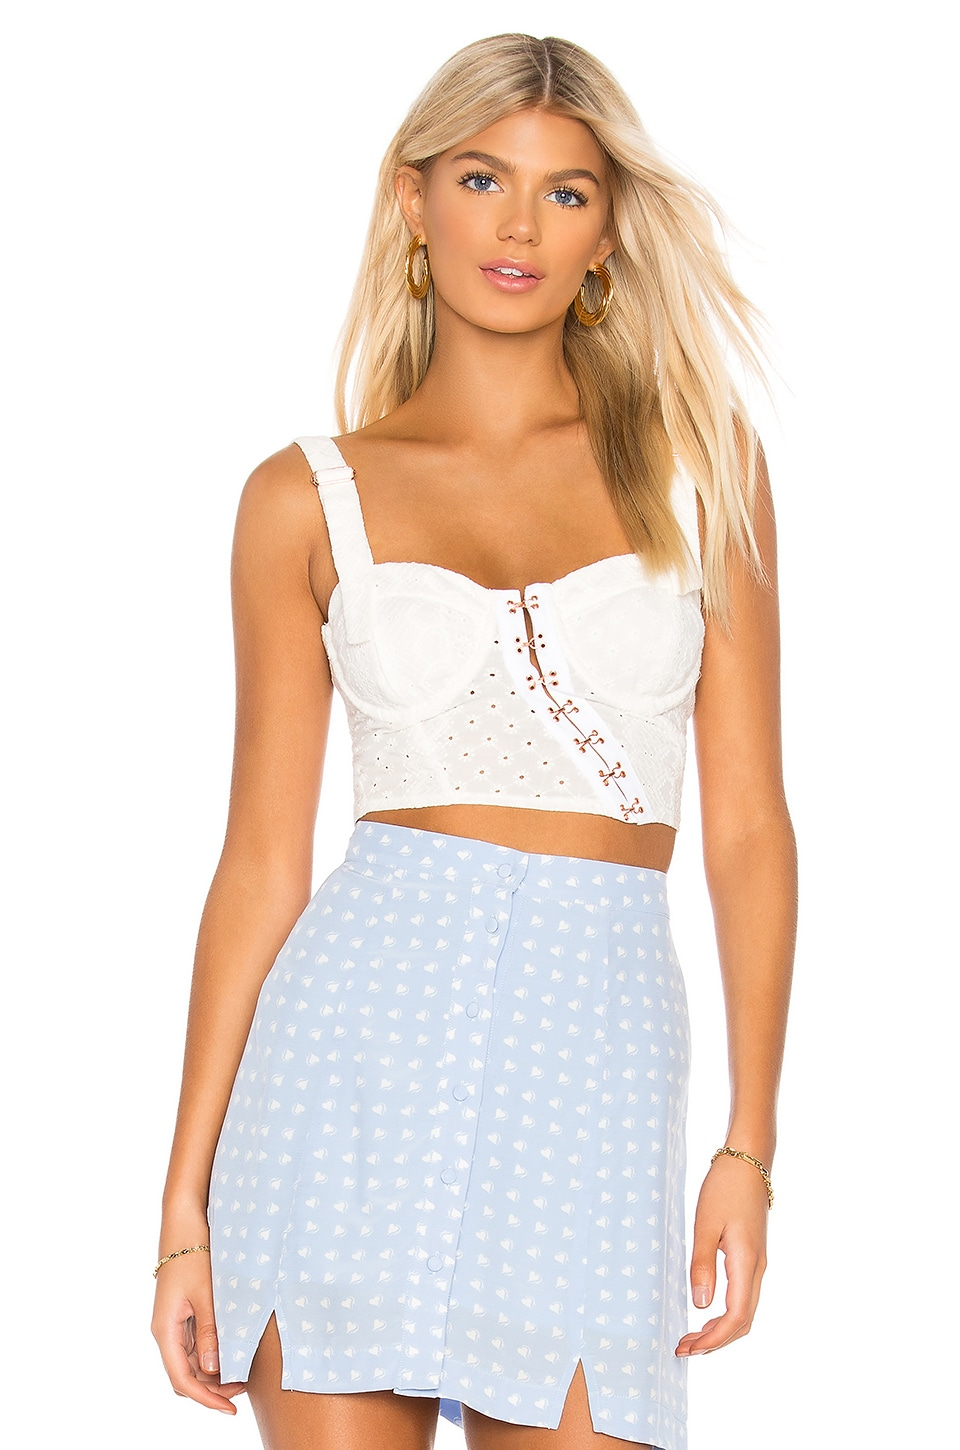 For Love & Lemons Charlotte Eyelet Crop Top in White Hearts